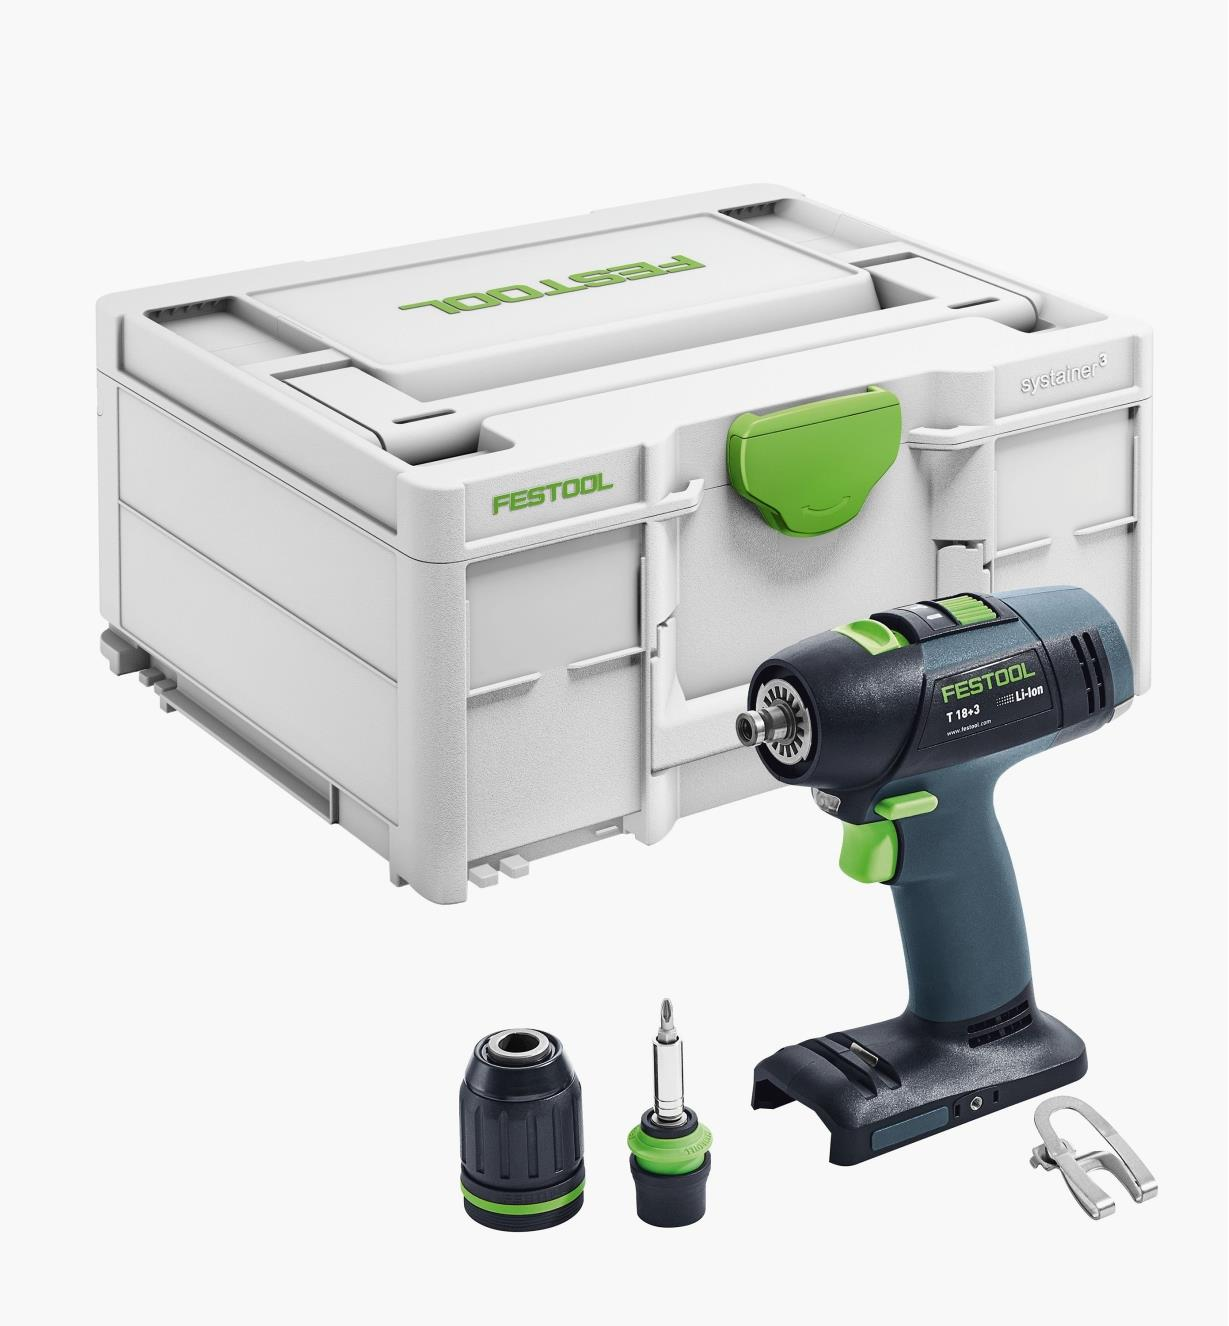 Perceuse-visseuse sans fil de base T 18+3 Festool